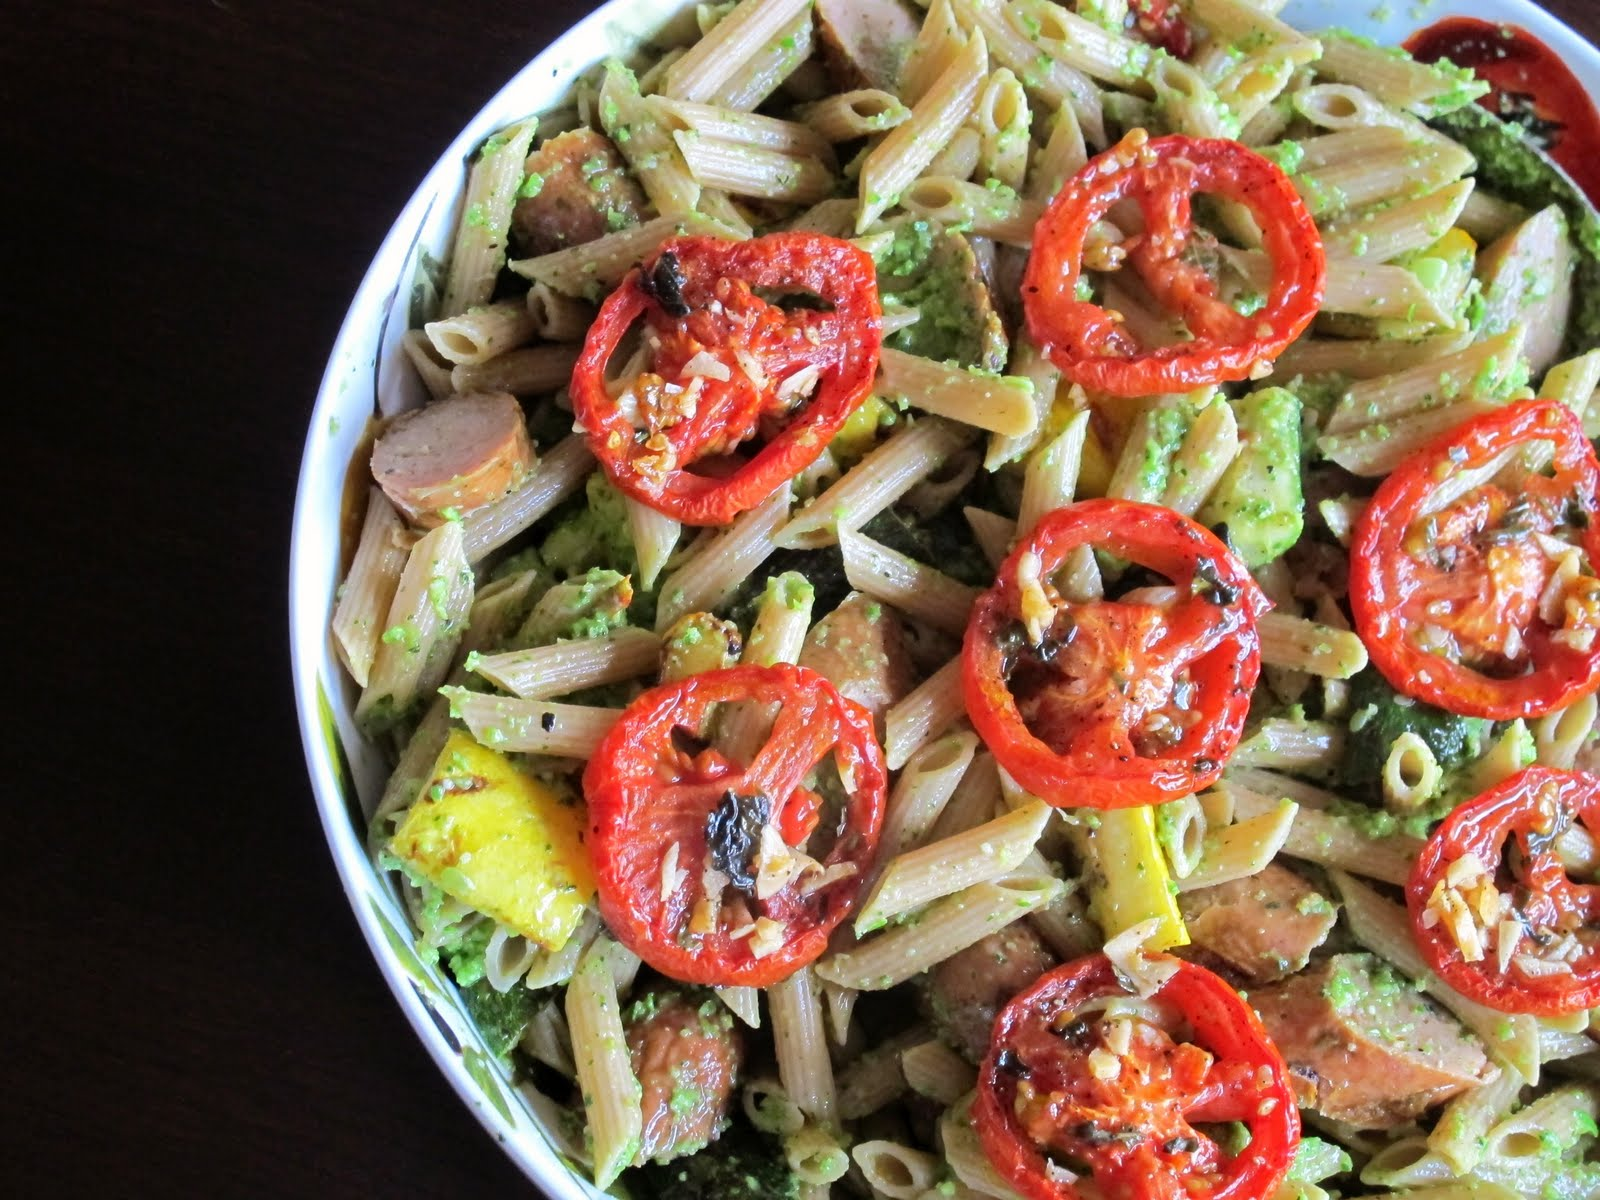 ... Grilled Veggie Pasta with Slow Roasted Tomatoes and Garlic Scape Pesto